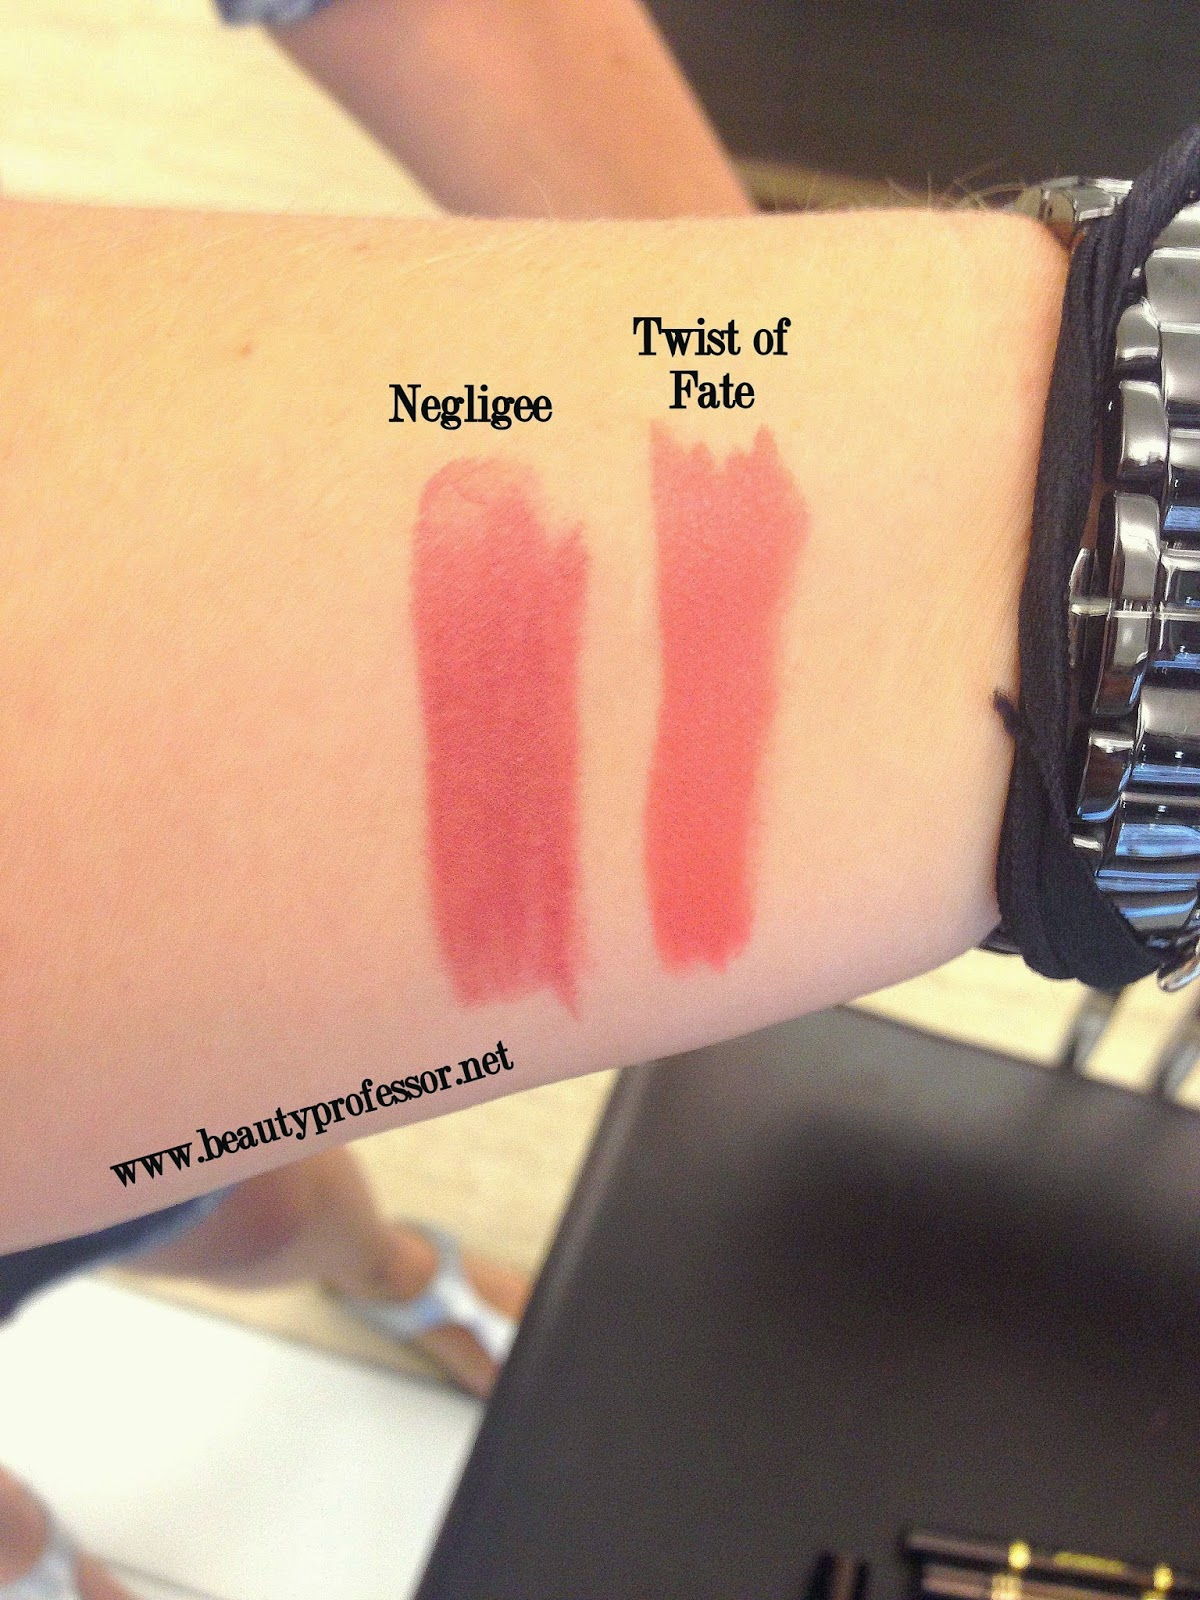 tom ford twist of fate negligee swatches